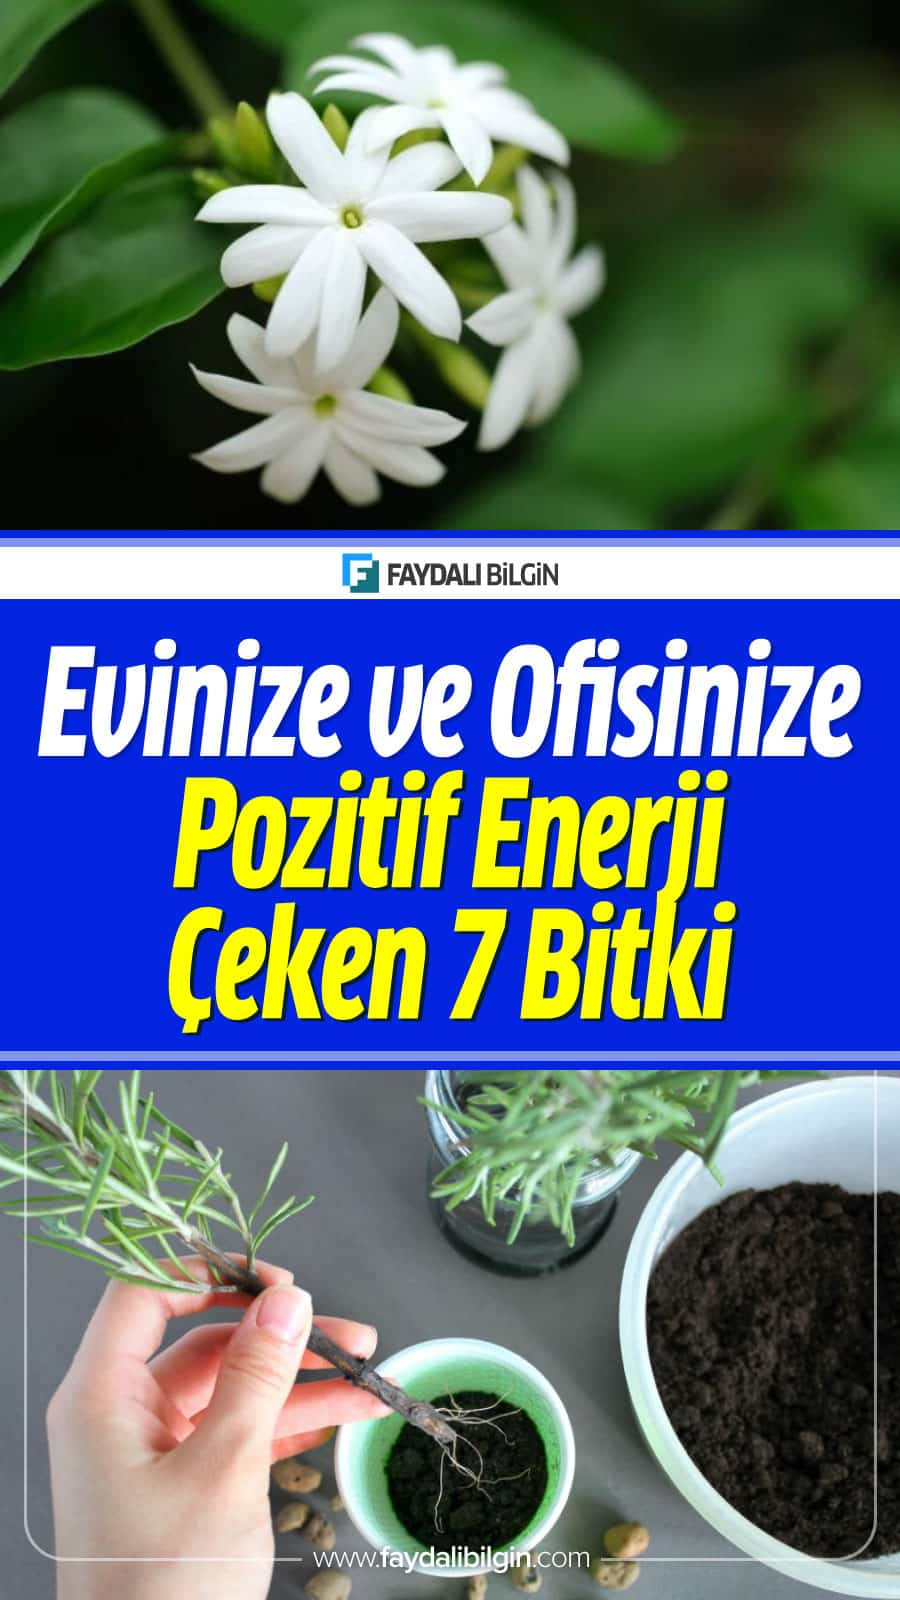 Evinize ve Ofisinize Pozitif Enerji Çeken 7 Bitki